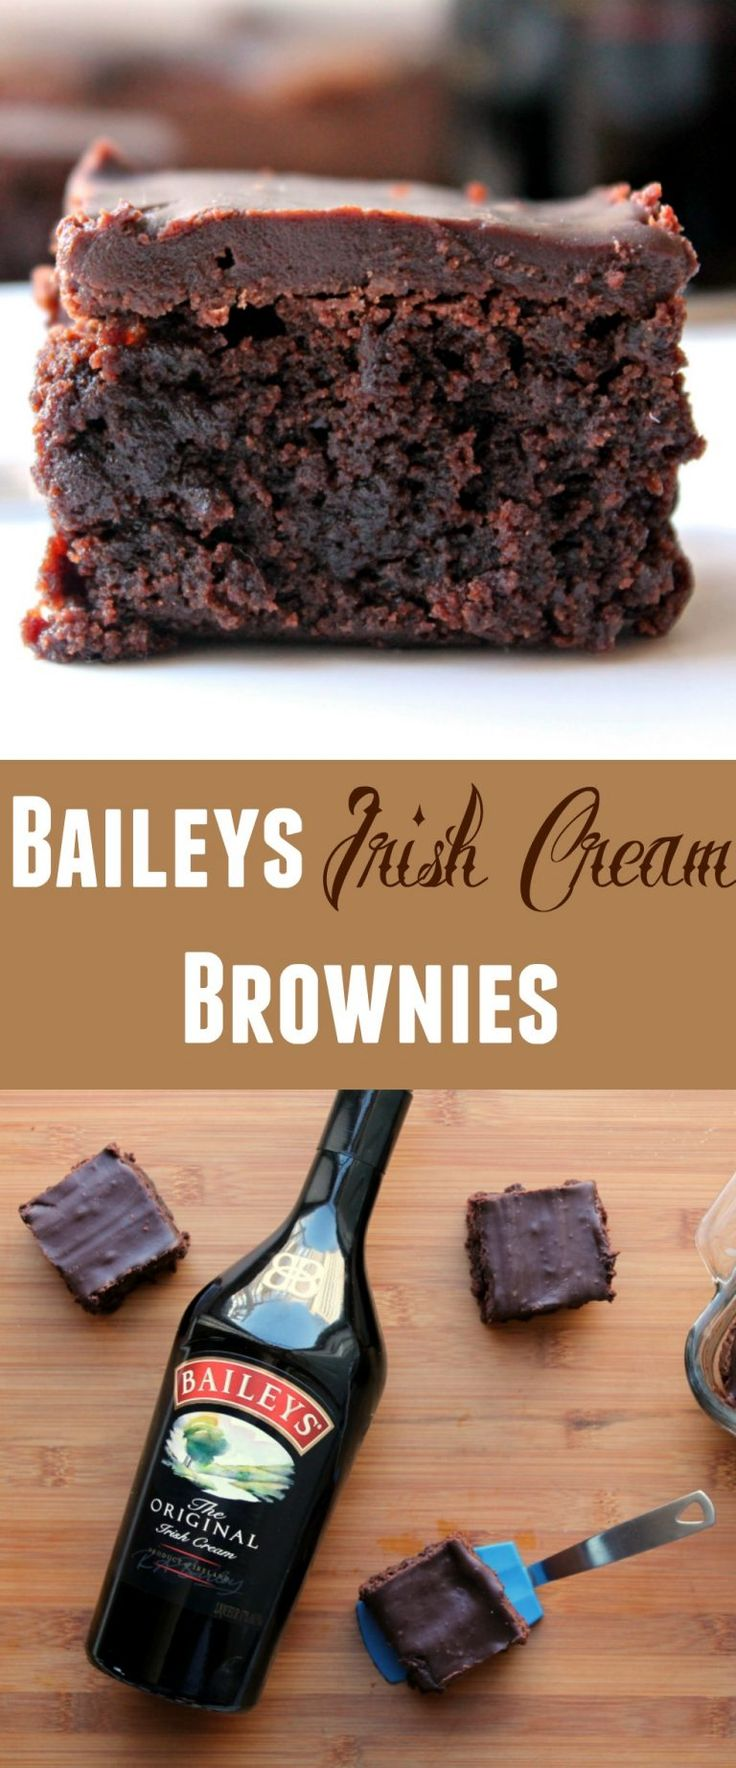 Blue apron brownies - Baileys Irish Cream Brownies I Ve Made These Decadent Fudgy Brownies As Easy As